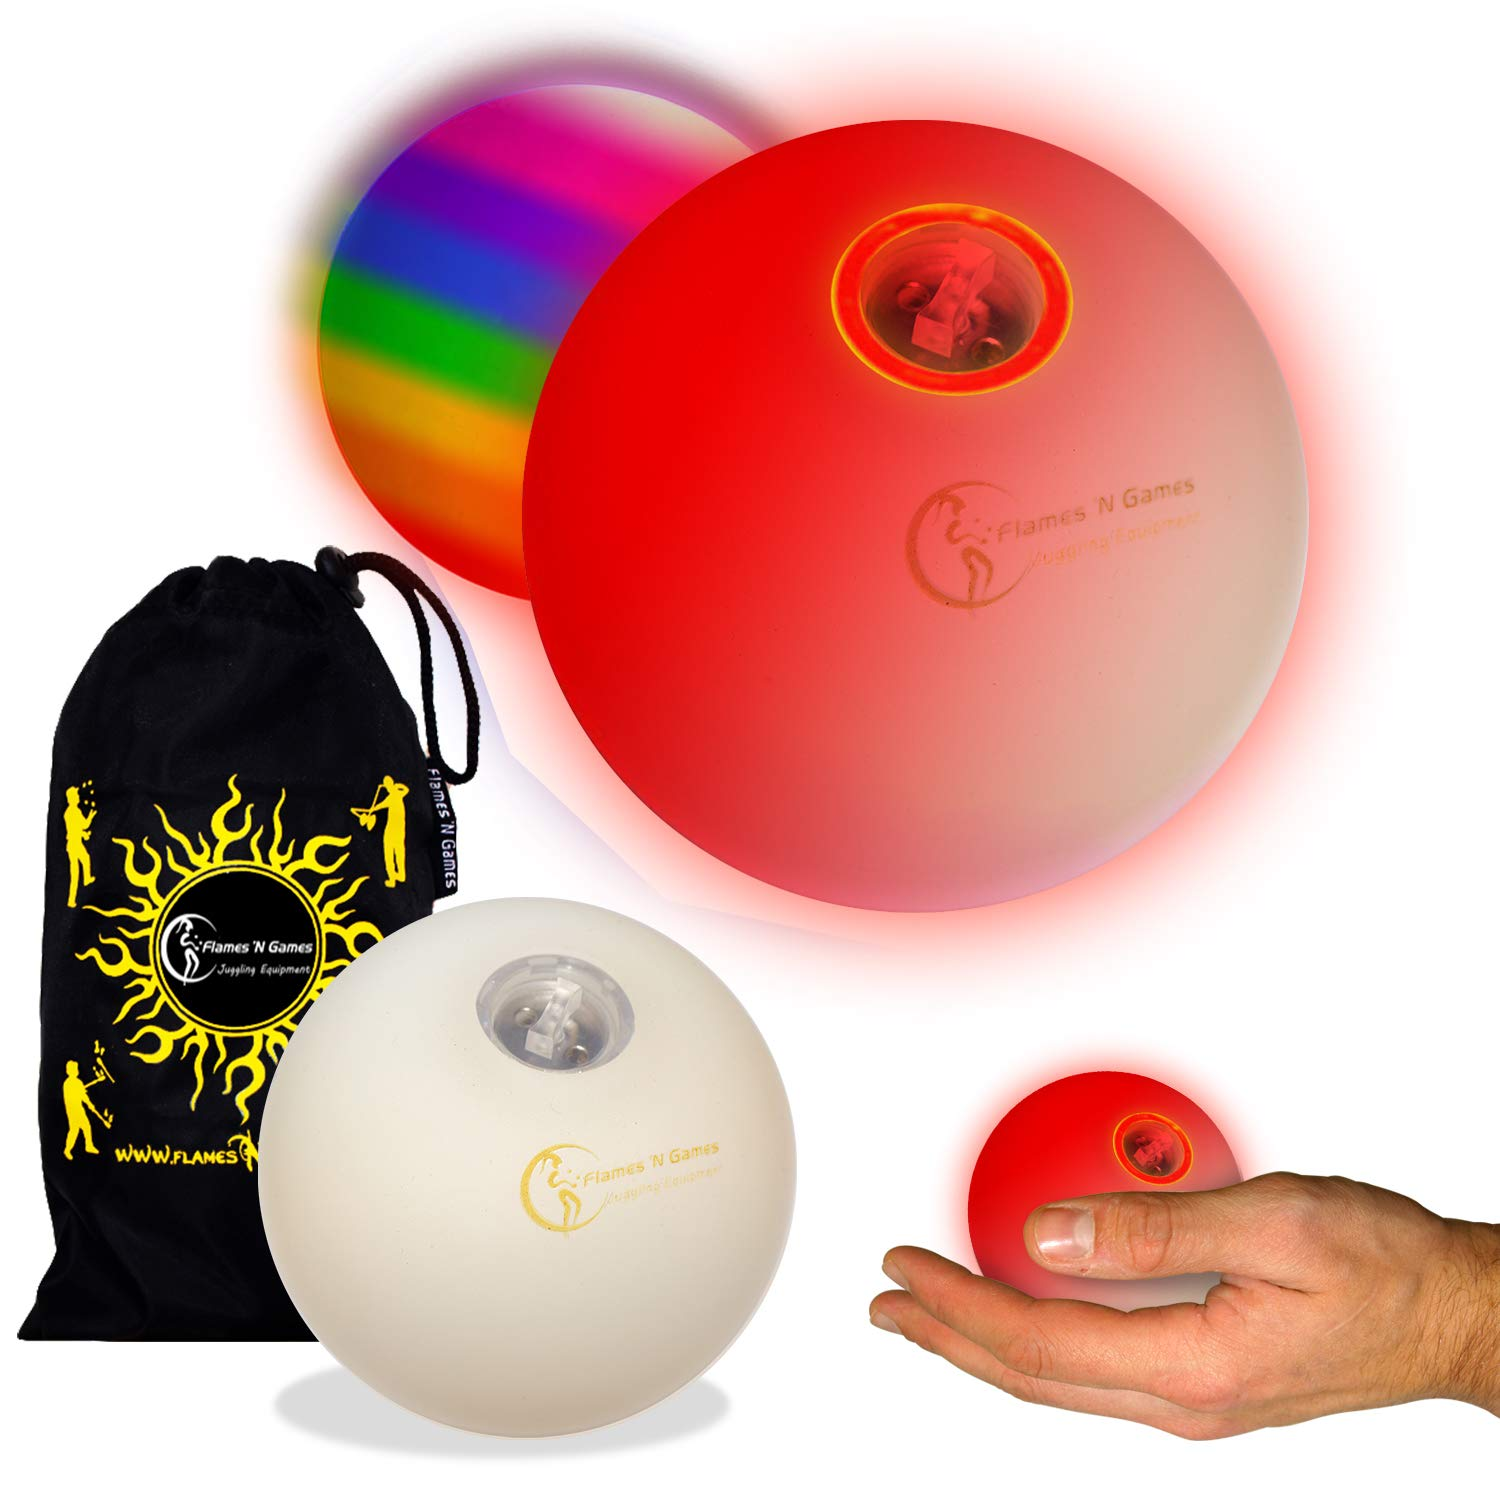 Flames N Games Pro LED Glow Juggling Balls 5X (Slow Fade Rainbow Effect) Ultra Bright Battery Powered Glow LED Juggling Ball Set with Travel Bag. (Set of 5) by Flames N Games Juggling Ball Sets (Image #2)